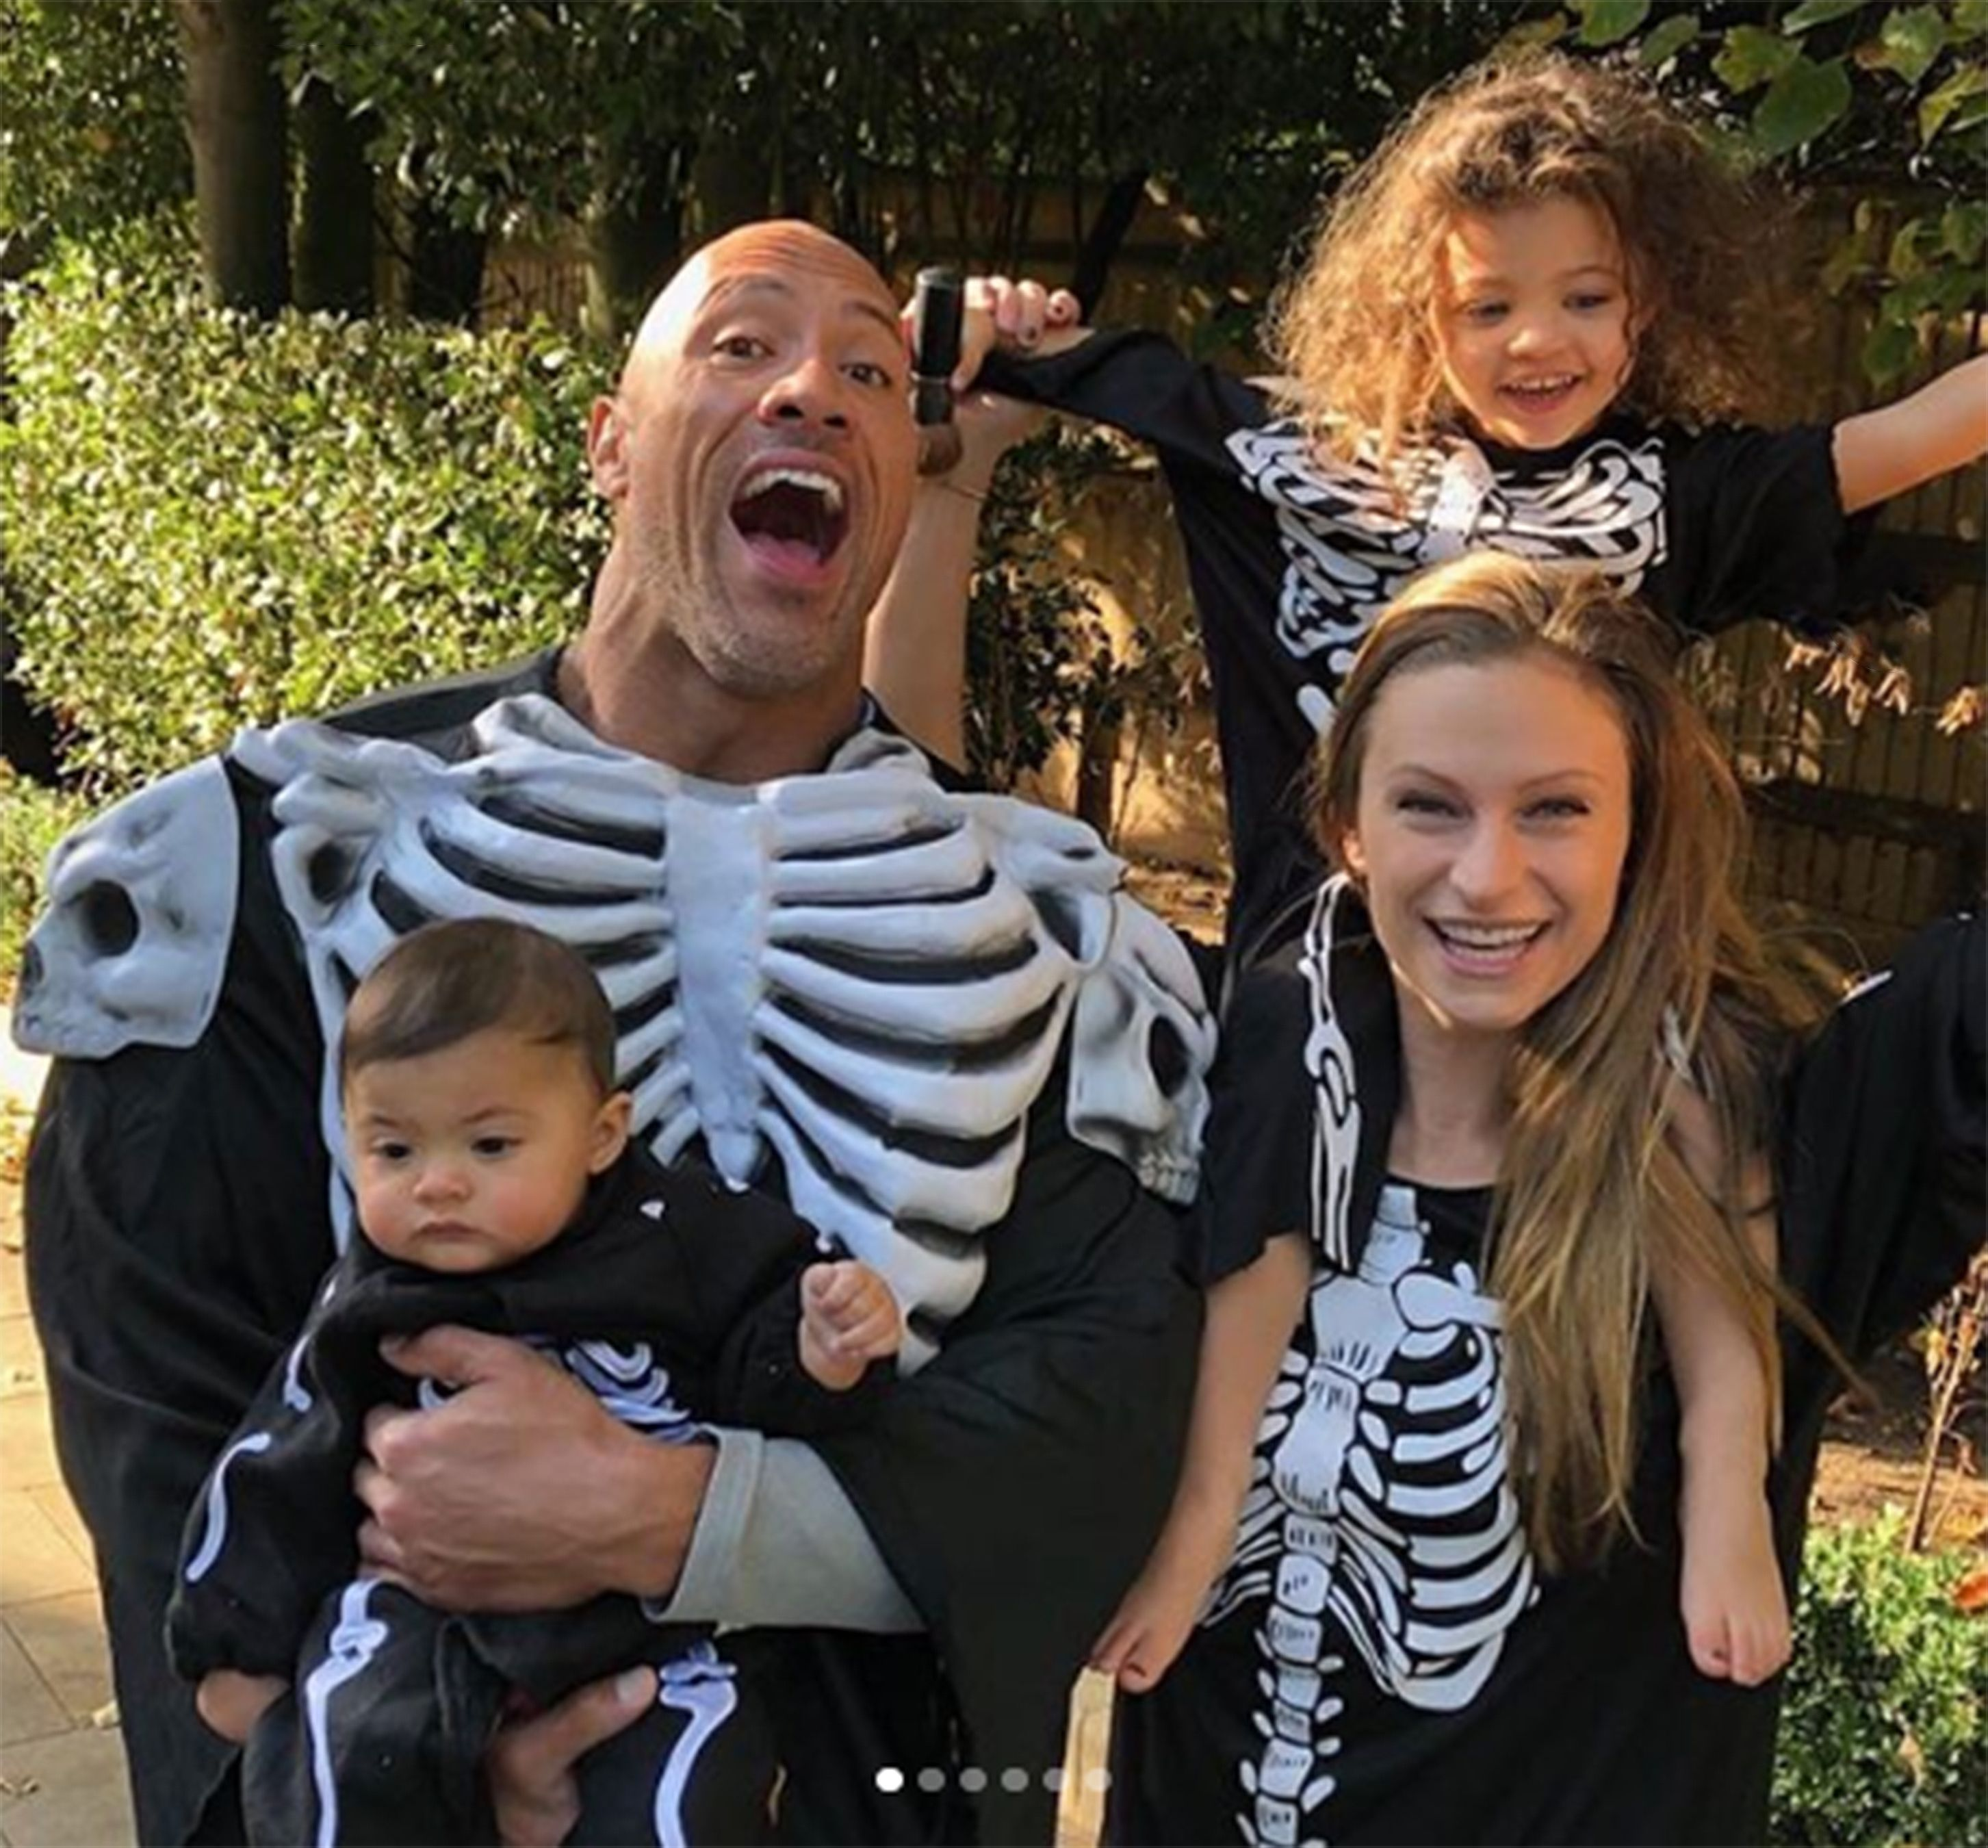 All About Lauren Hashian Dwayne The Rock Johnson S Longtime Love And New Wife Dwayne Johnson Wife Dwayne Johnson Kids The Rock Dwayne Johnson